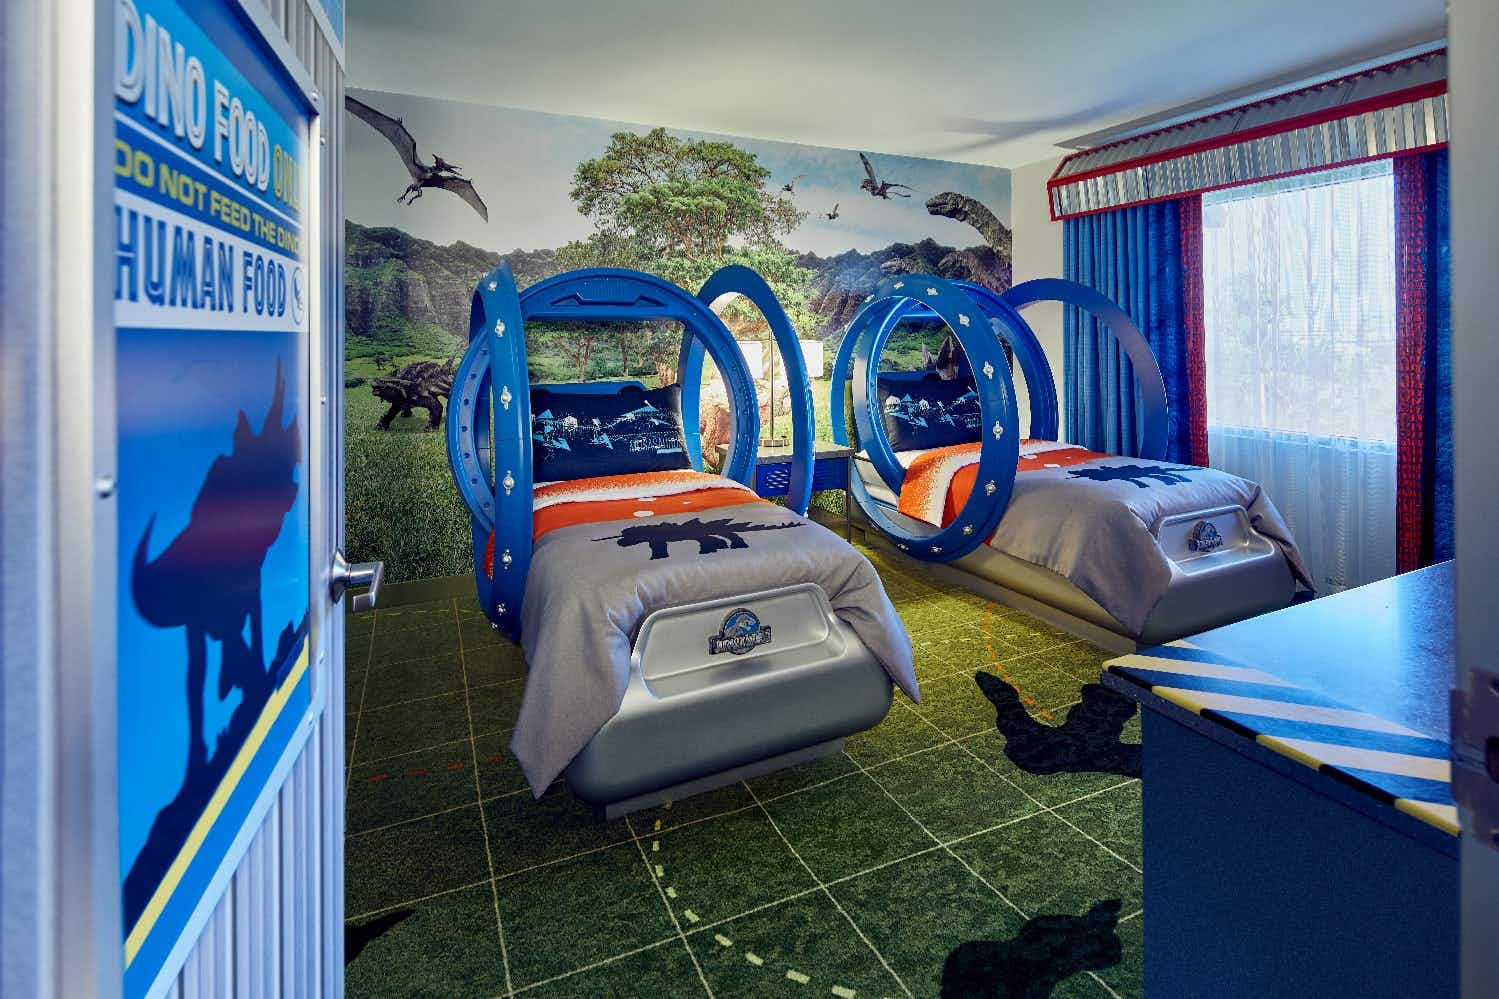 Dinosaur-mad kids will love staying at these Jurassic World-themed hotel suites